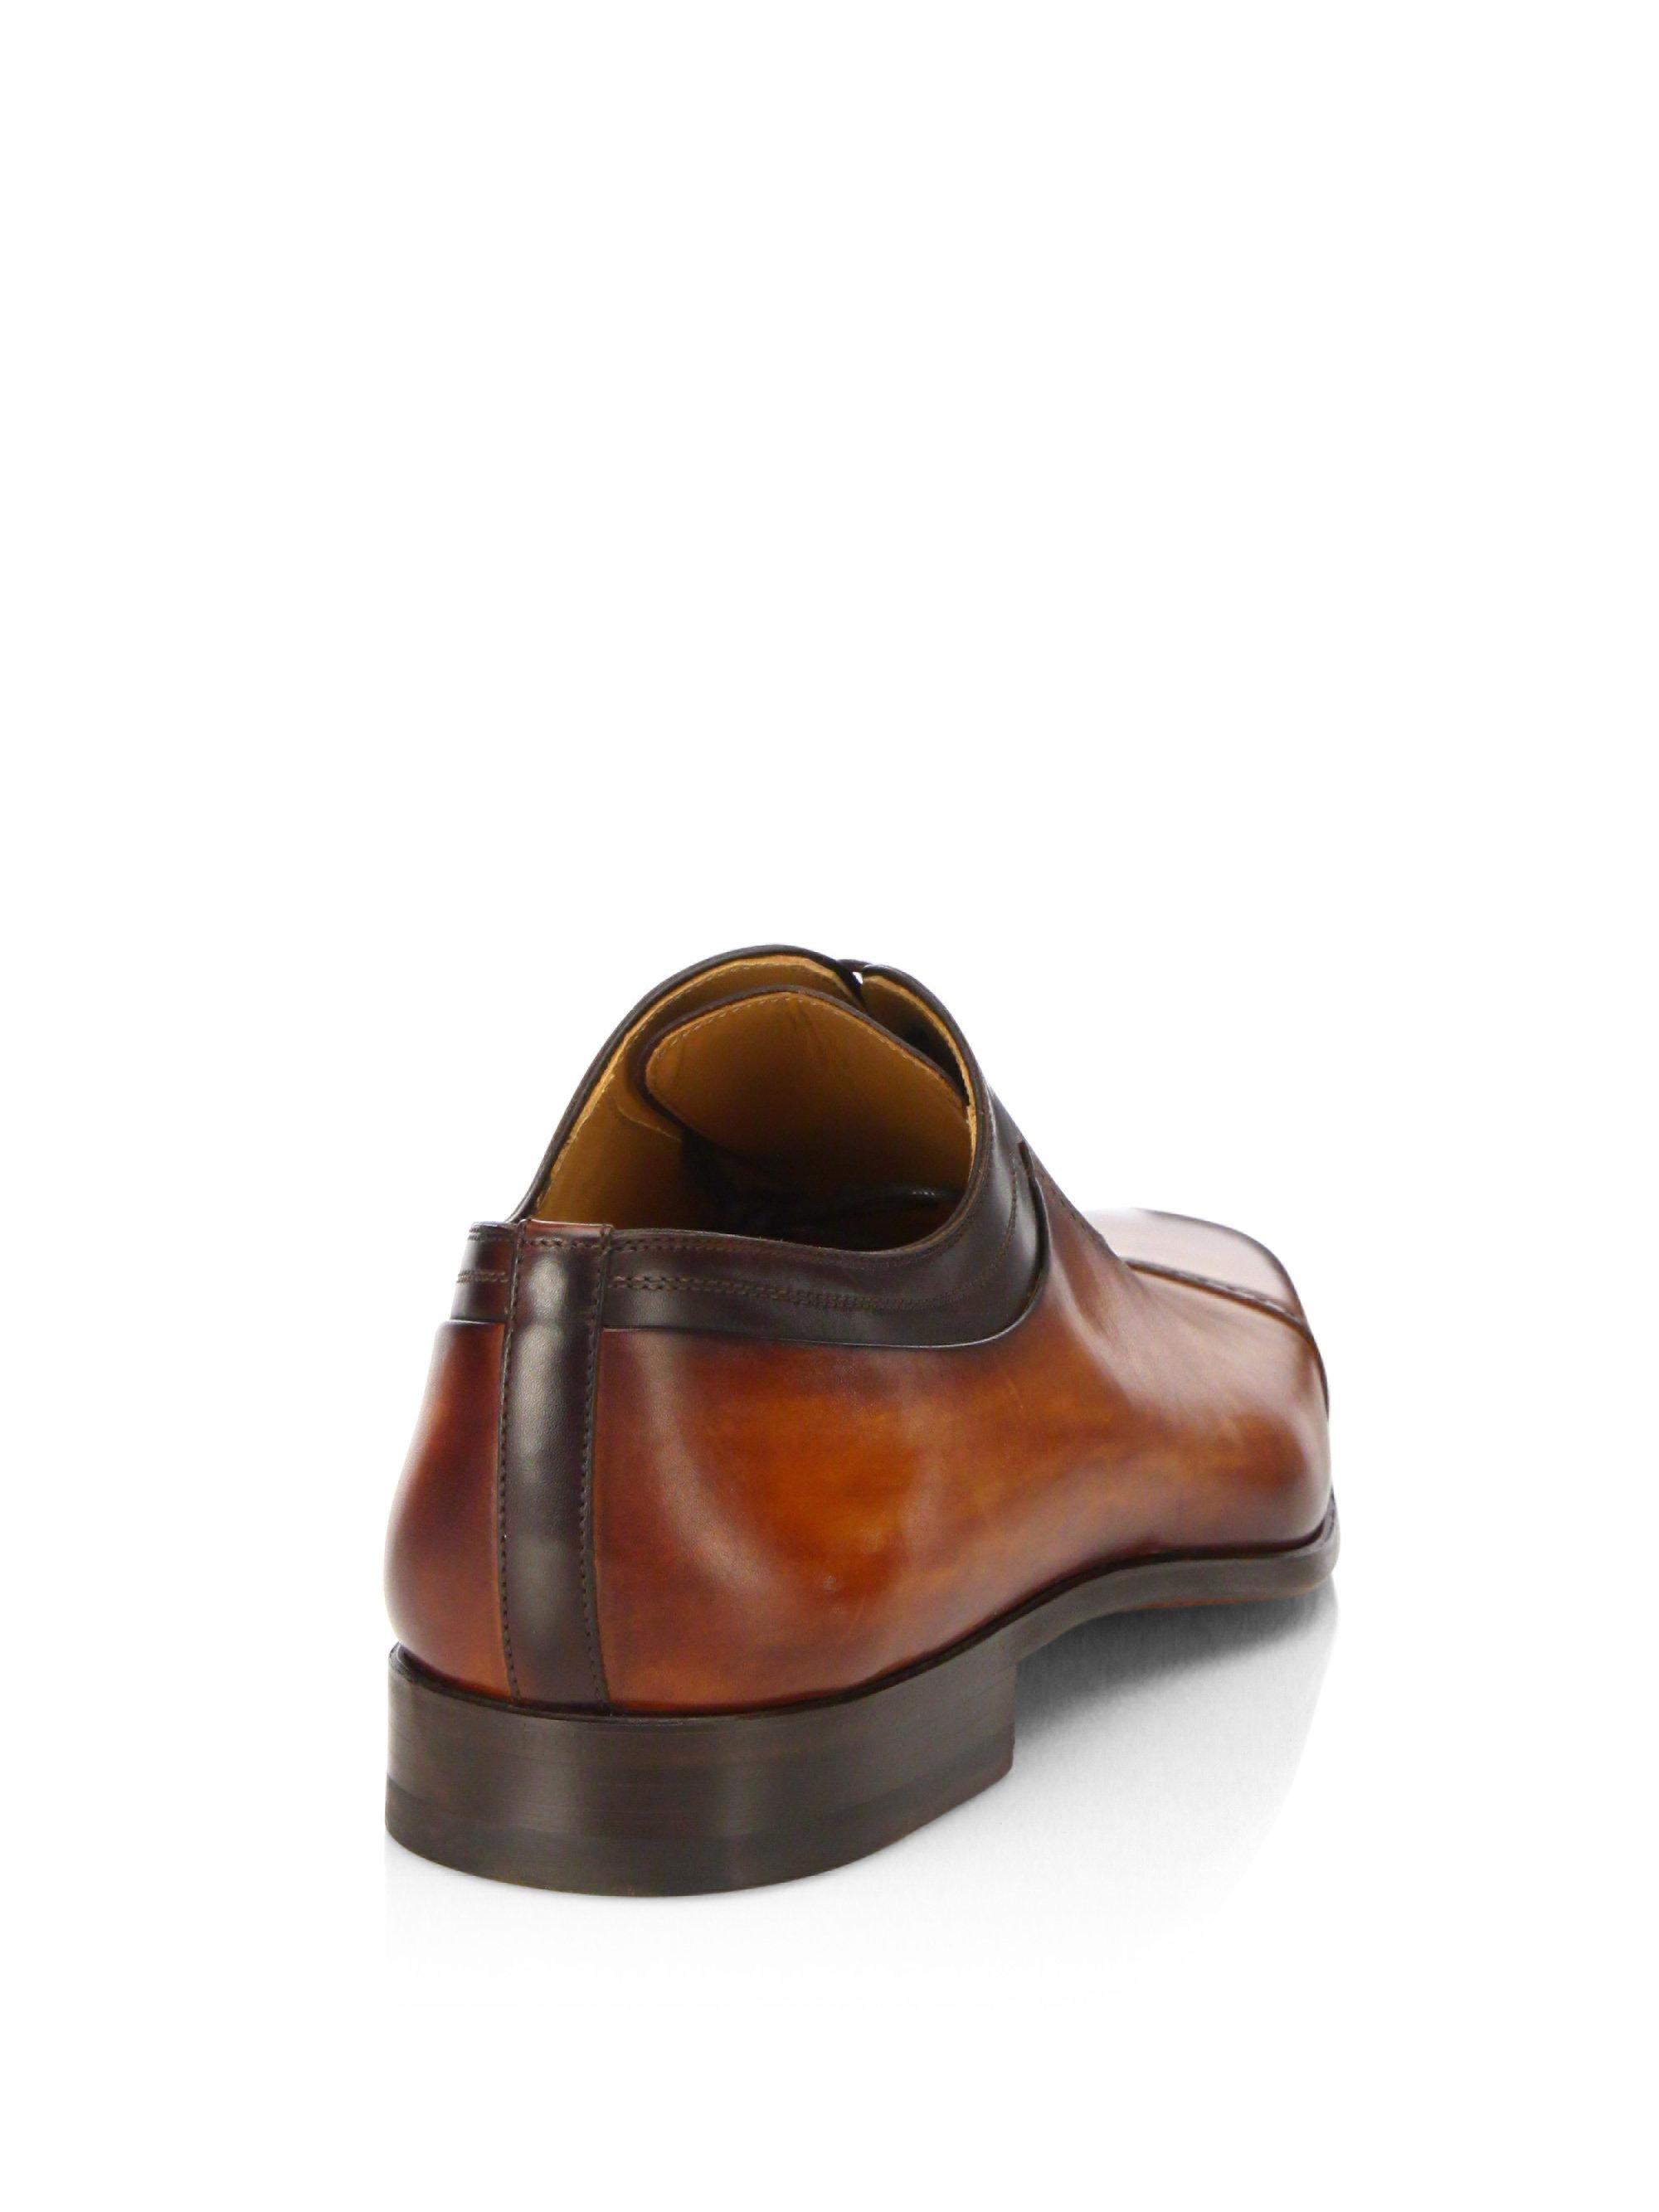 Saks Fifth AvenueCOLLECTION BY MAGNANNI Leather Oxfords rKcaS9